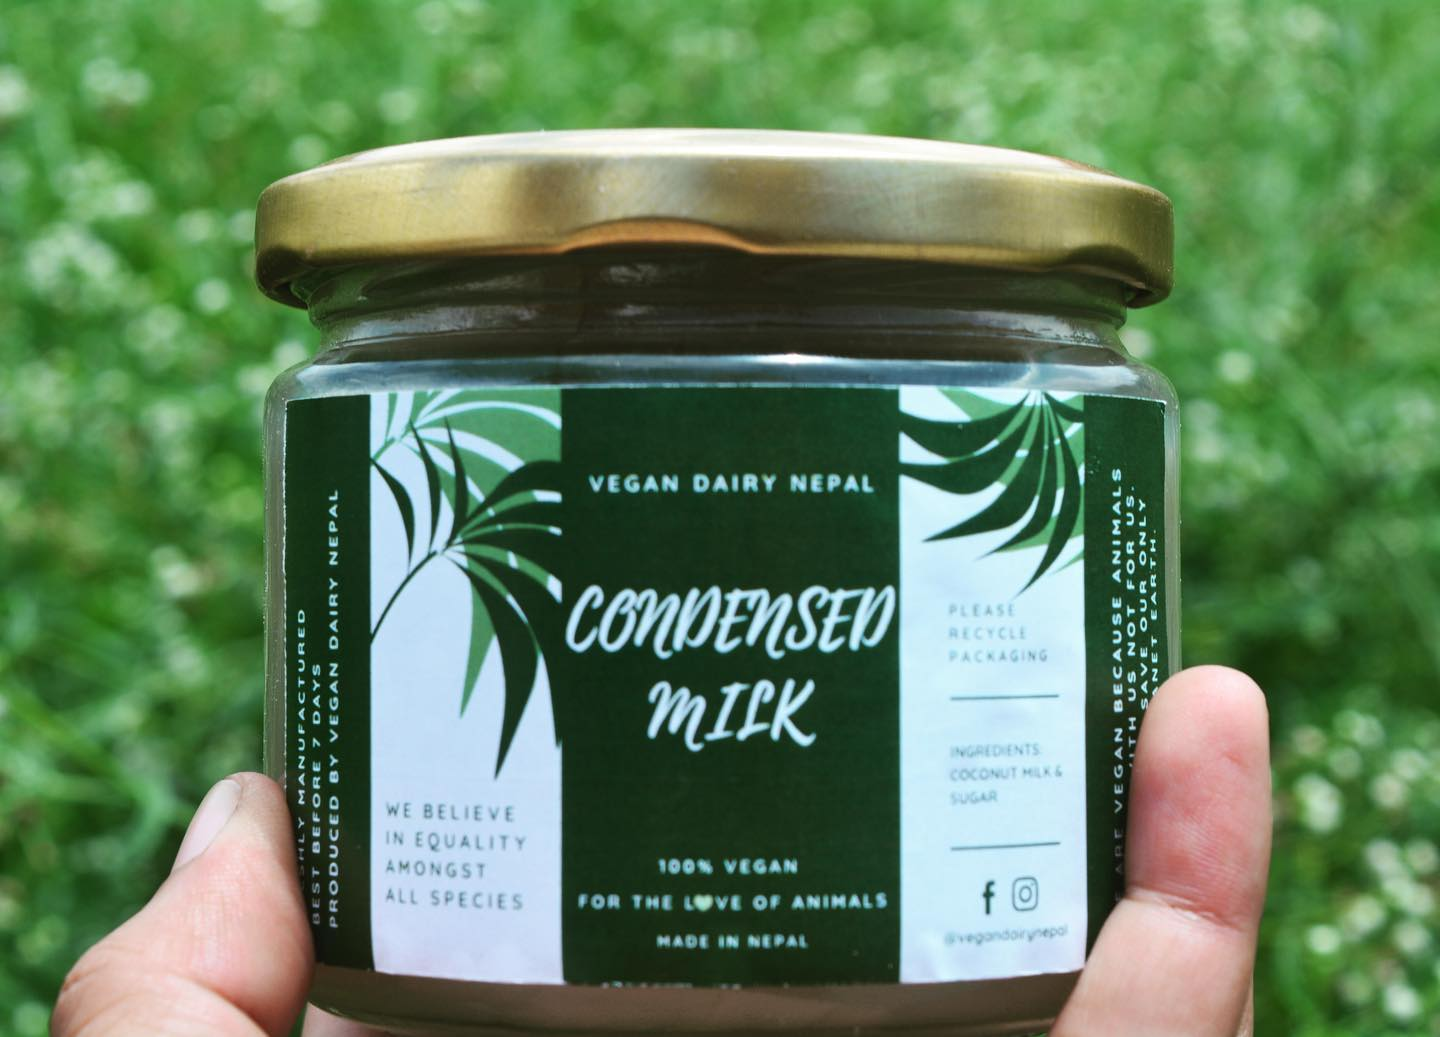 Vegan condensed milk from Vegan Dairy Nepal. Image © Vegan Dairy Nepal